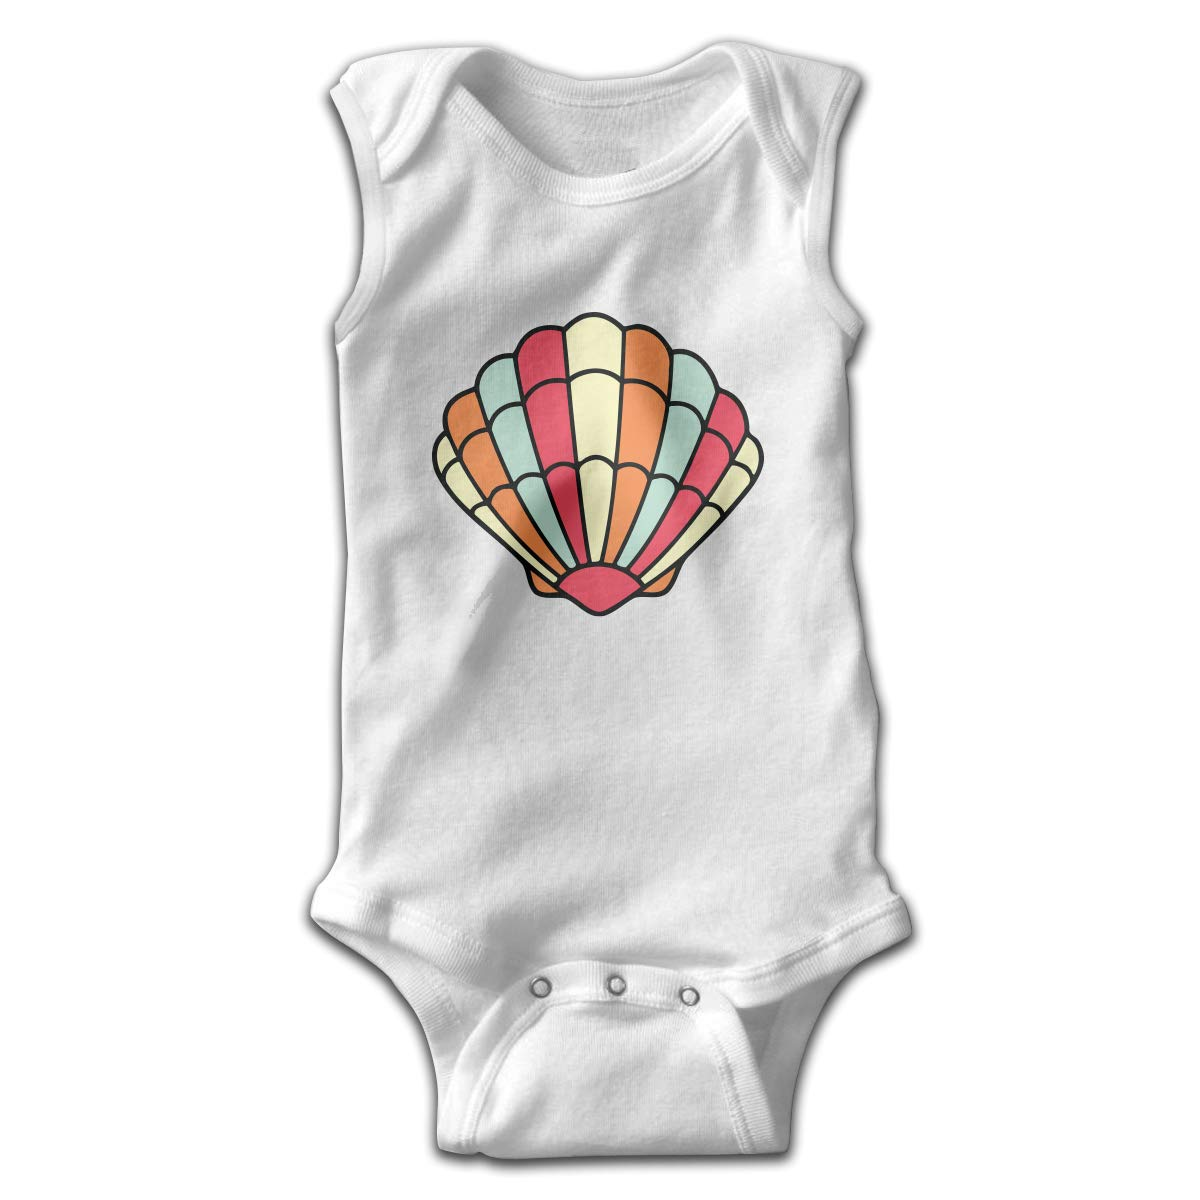 Efbj Toddler Baby Boys Rompers Sleeveless Cotton Onesie,Shell Colorful Outfit Autumn Pajamas